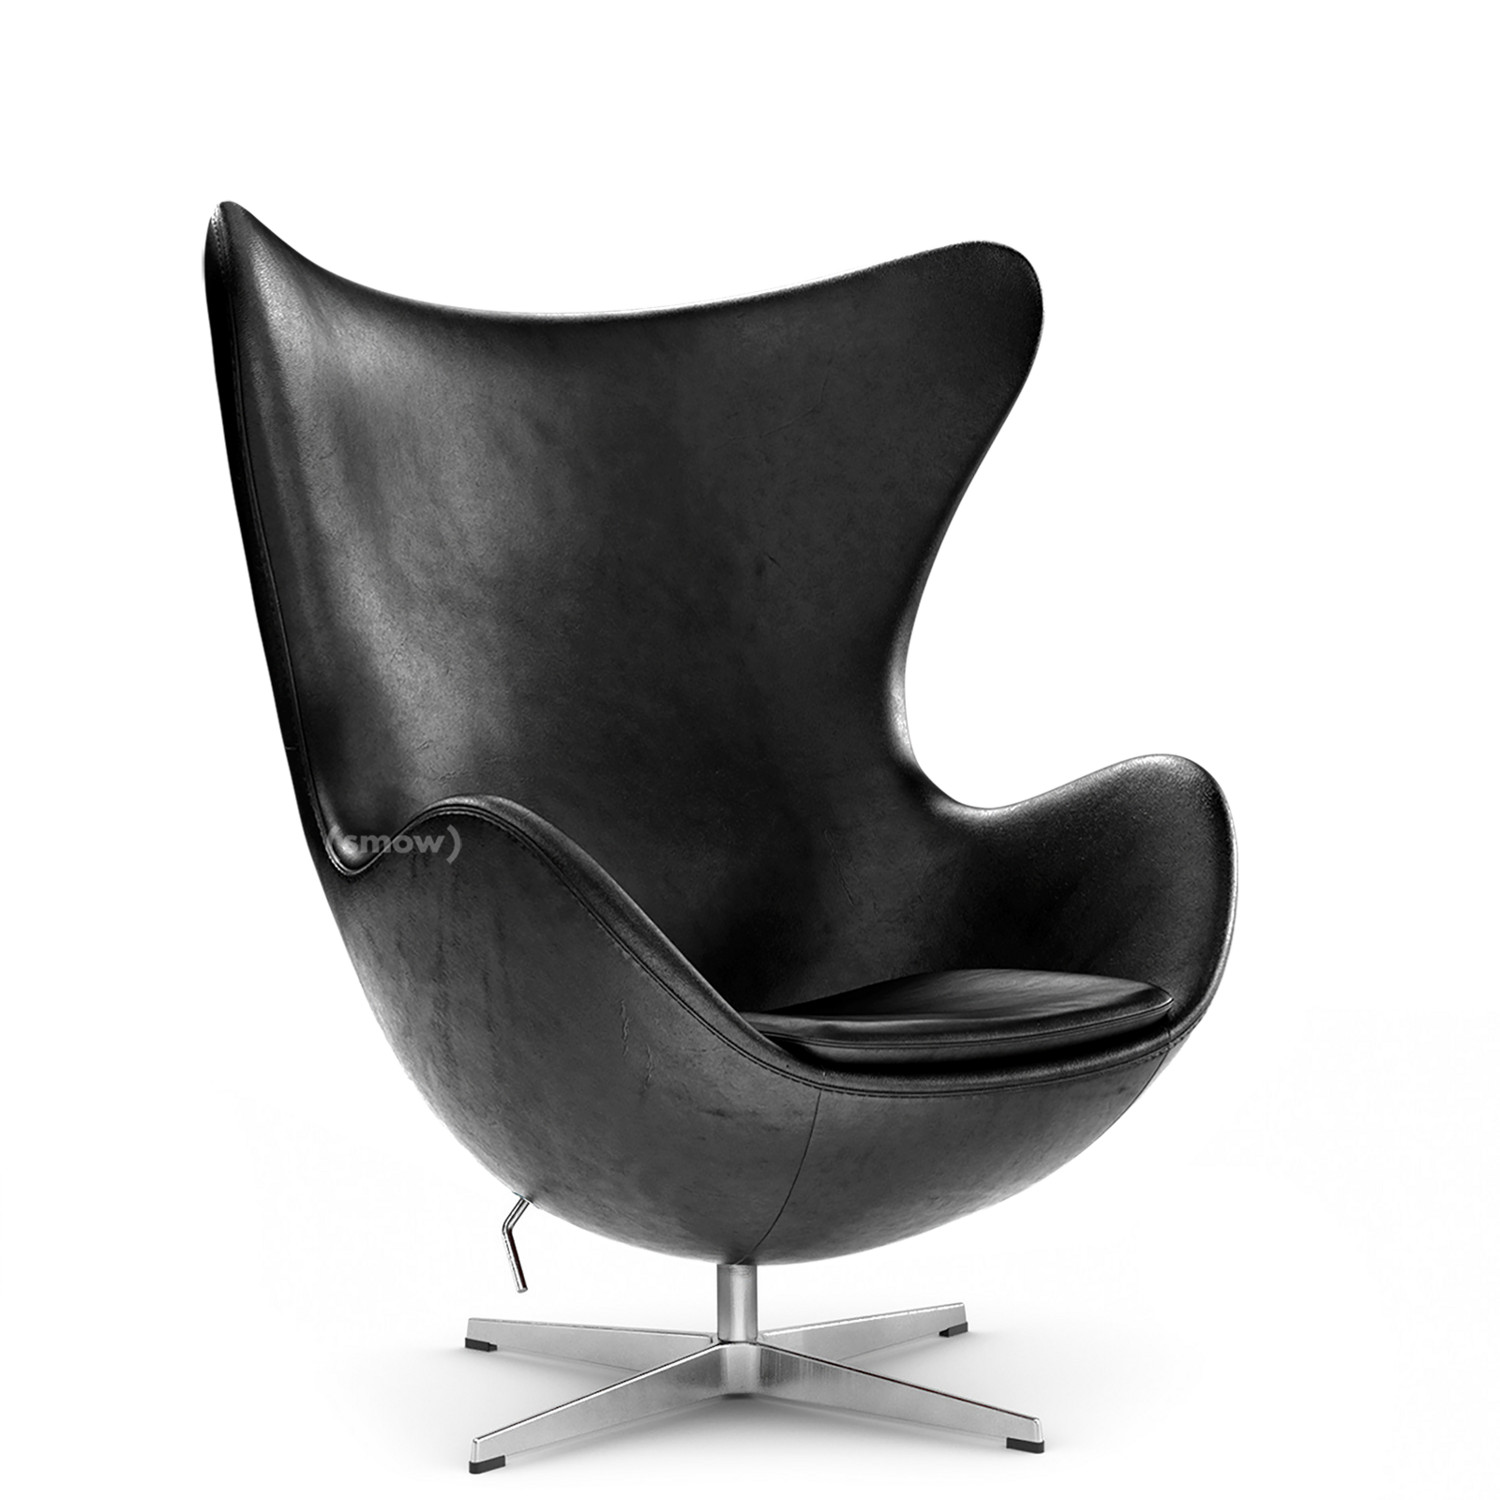 Egg Chair Elegance Leather|Black|Without Footstool